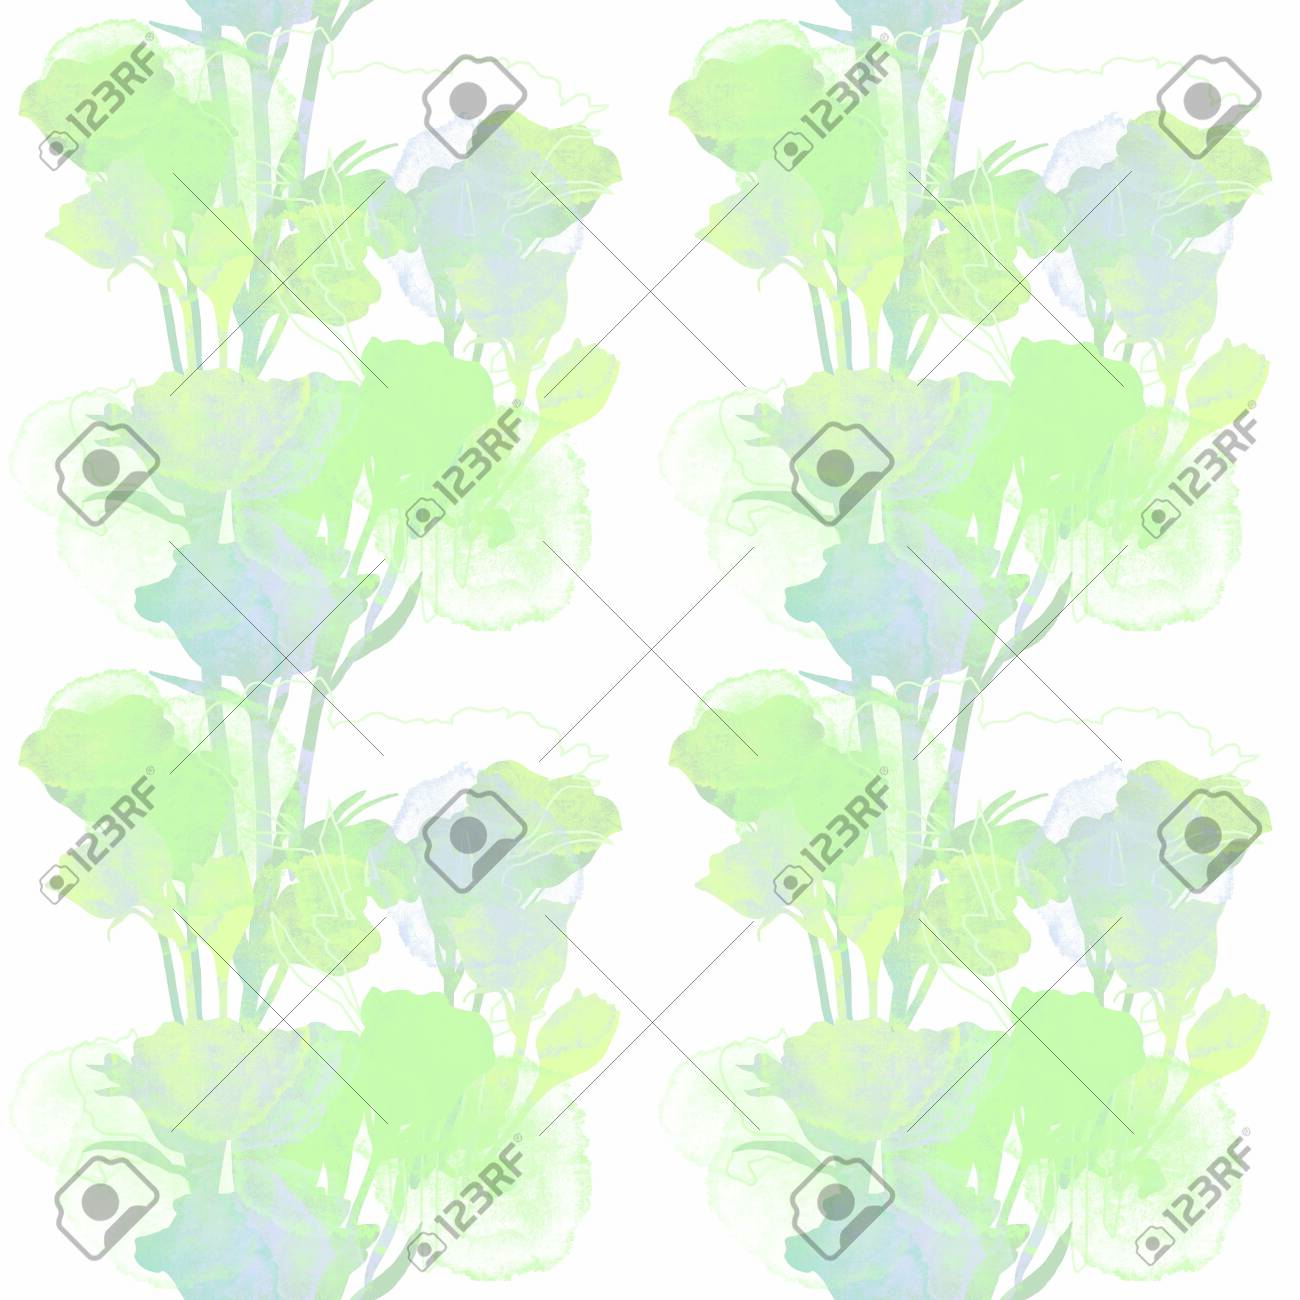 Green and gray floral patten. Roses shiluette. Hand drawn texture illustration. - 132391049